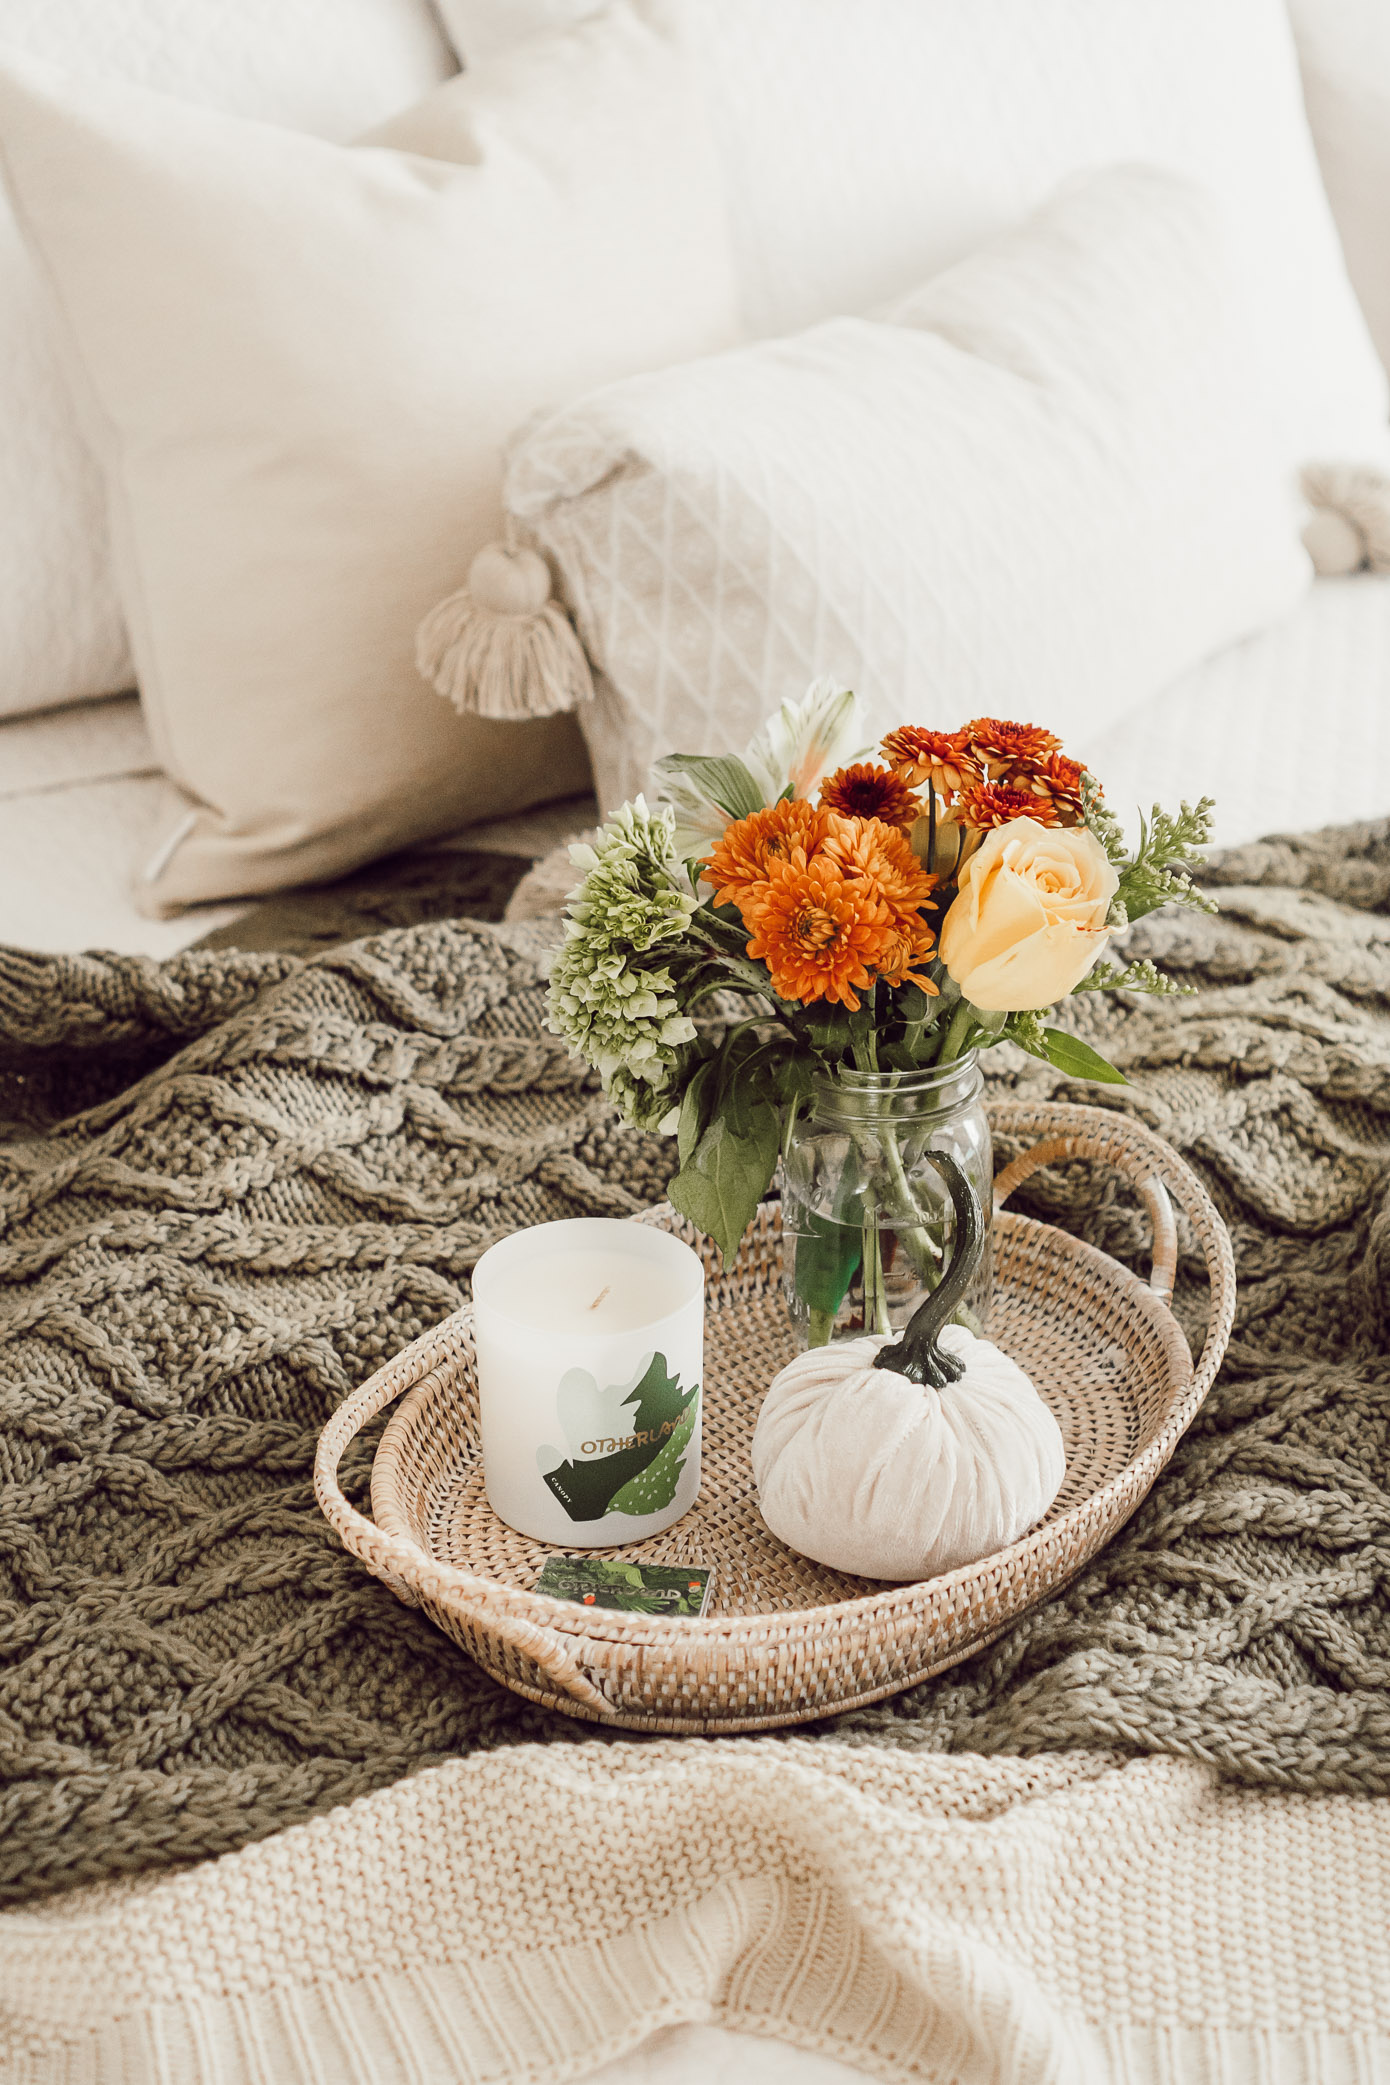 Fall Bedroom Decor | 4 Essentials For Making Your Bedroom Fall Ready - Louella Reese Blog